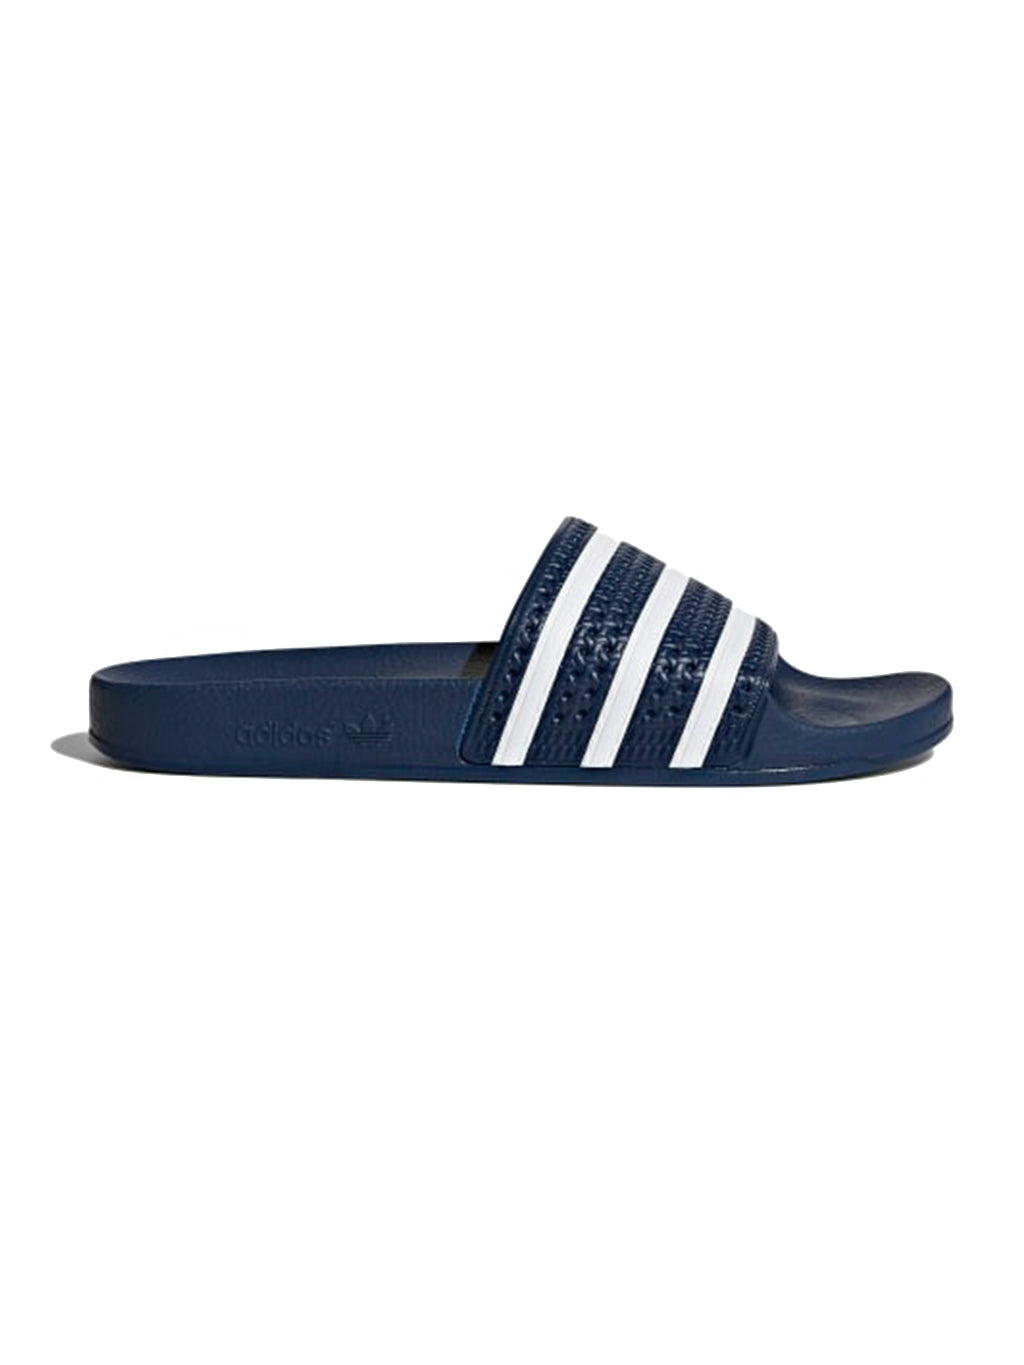 Navy & White Adilette Slides